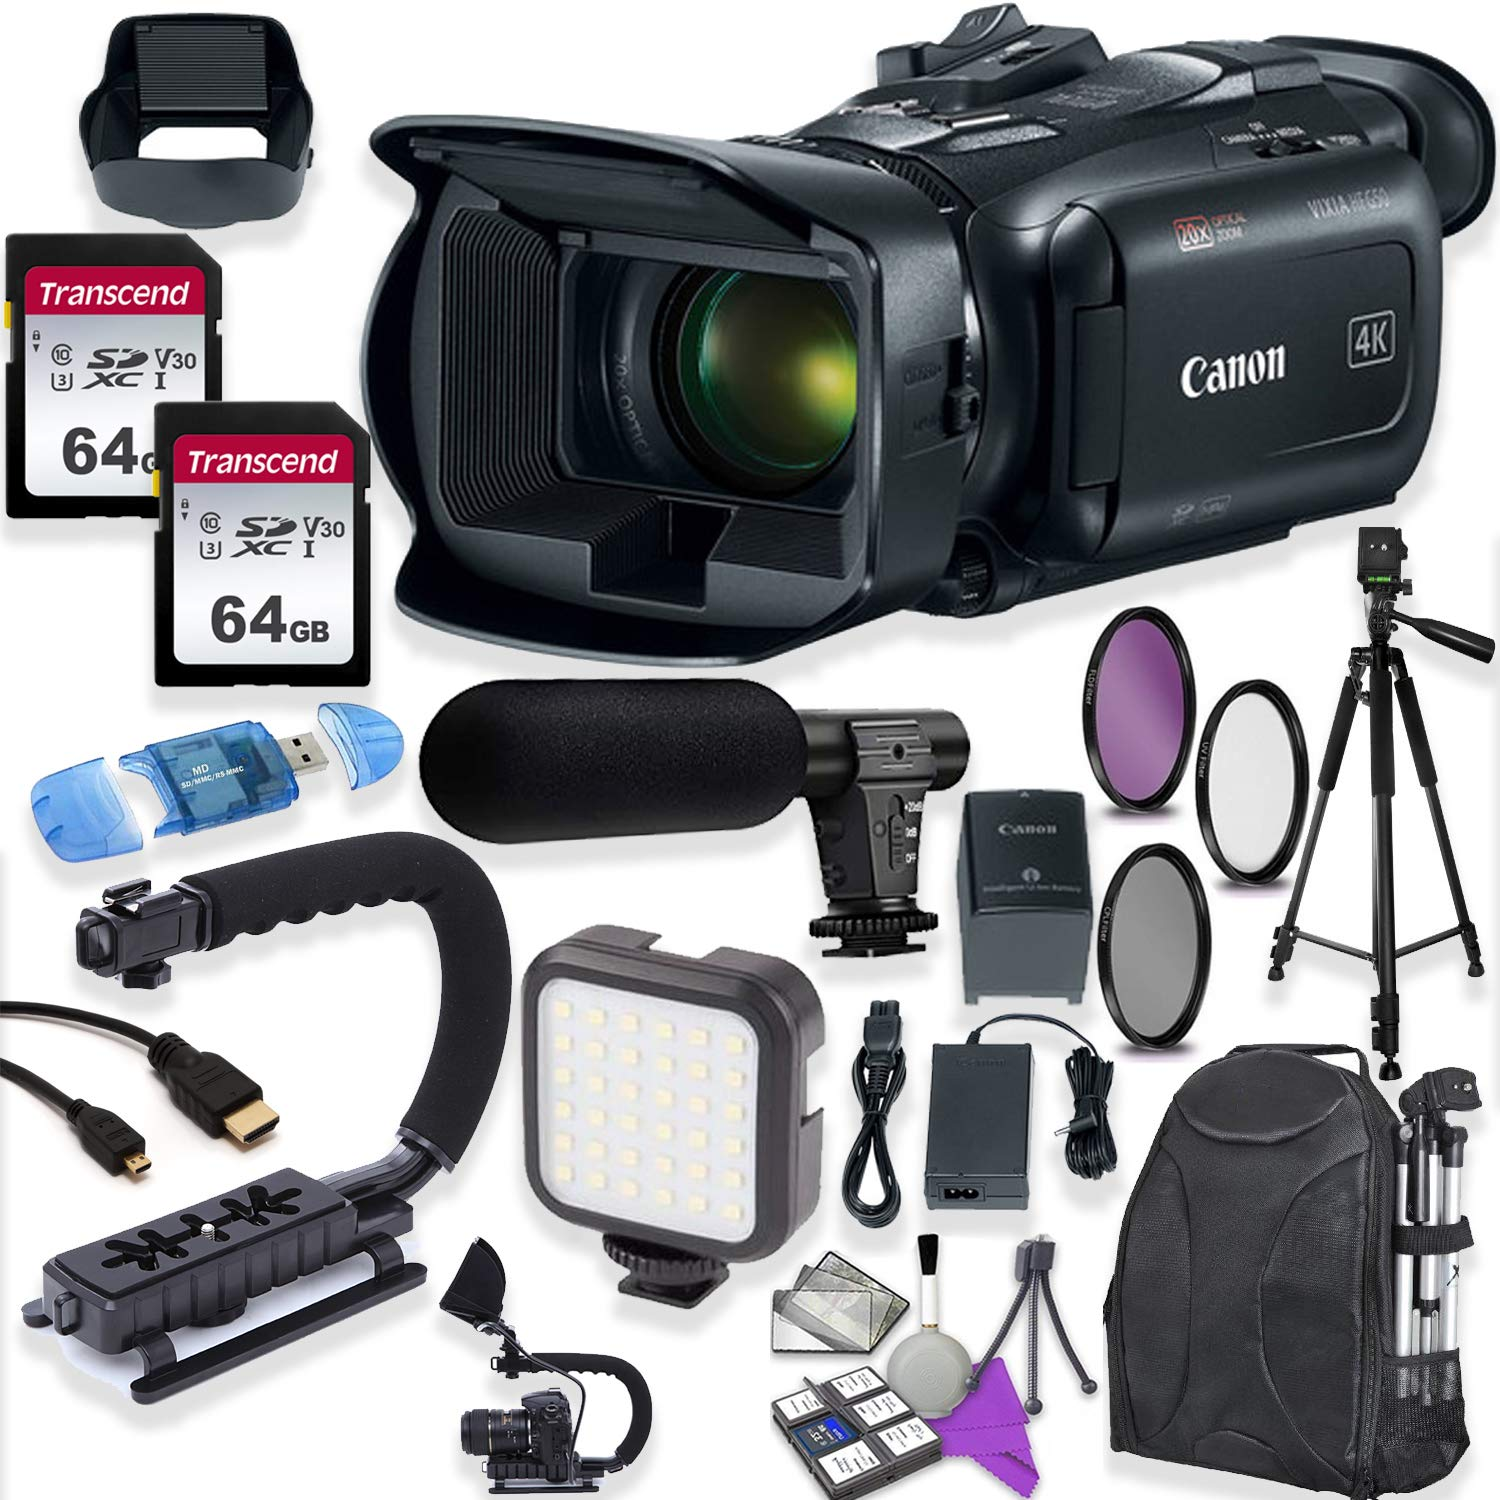 Canon Vixia HF G50 UHD 4K Camcorder with Premium Accessory Kit Including Padded Backpack, Microphone, Video Light & 128GB High Speed U3 Memory by Canon